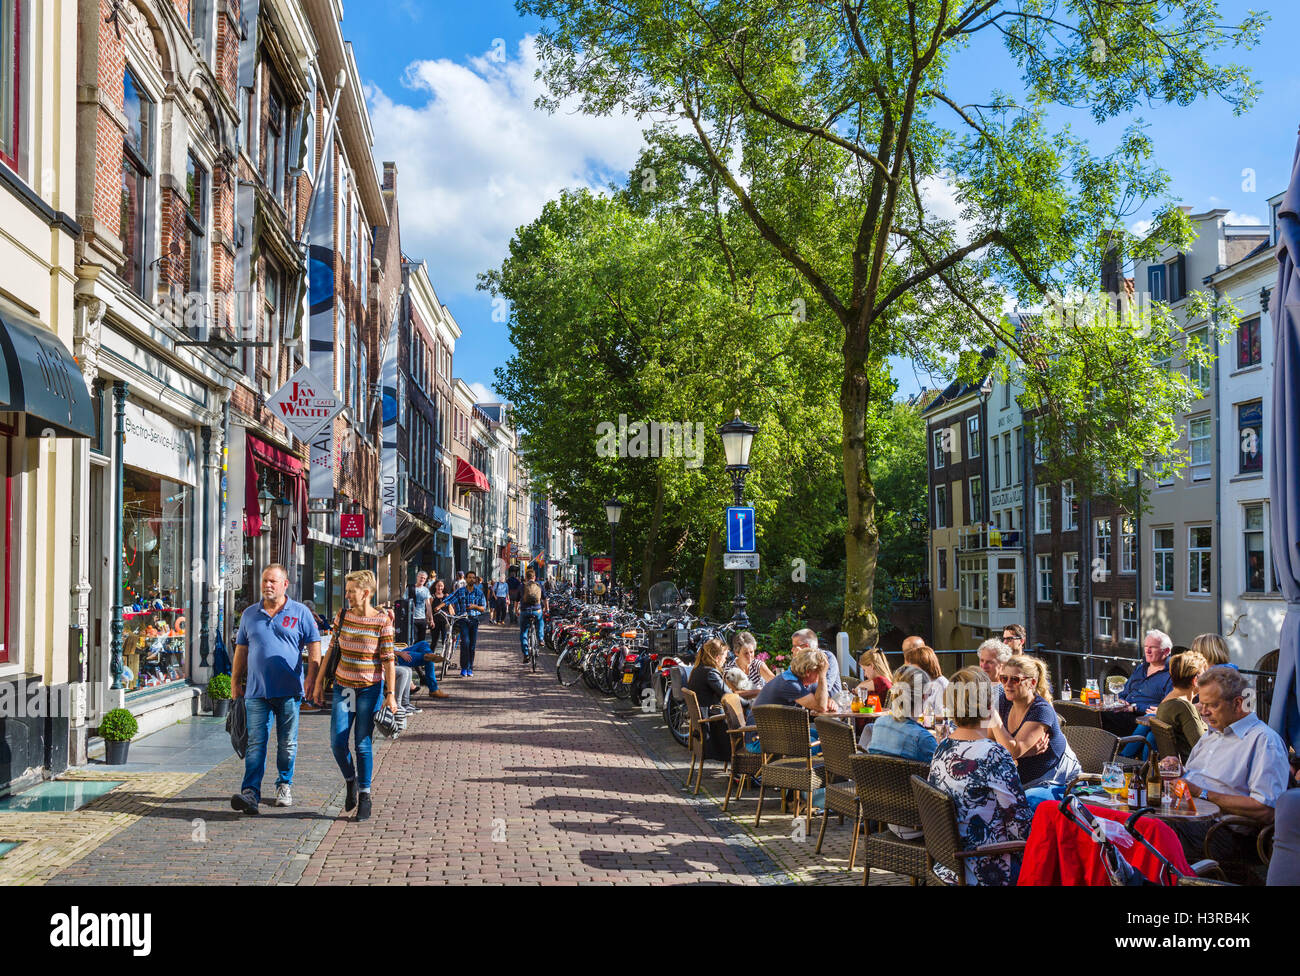 Cafes and bars alongside the Oudegracht (Old Canal) in the city centre, Utrecht, Netherlands - Stock Image